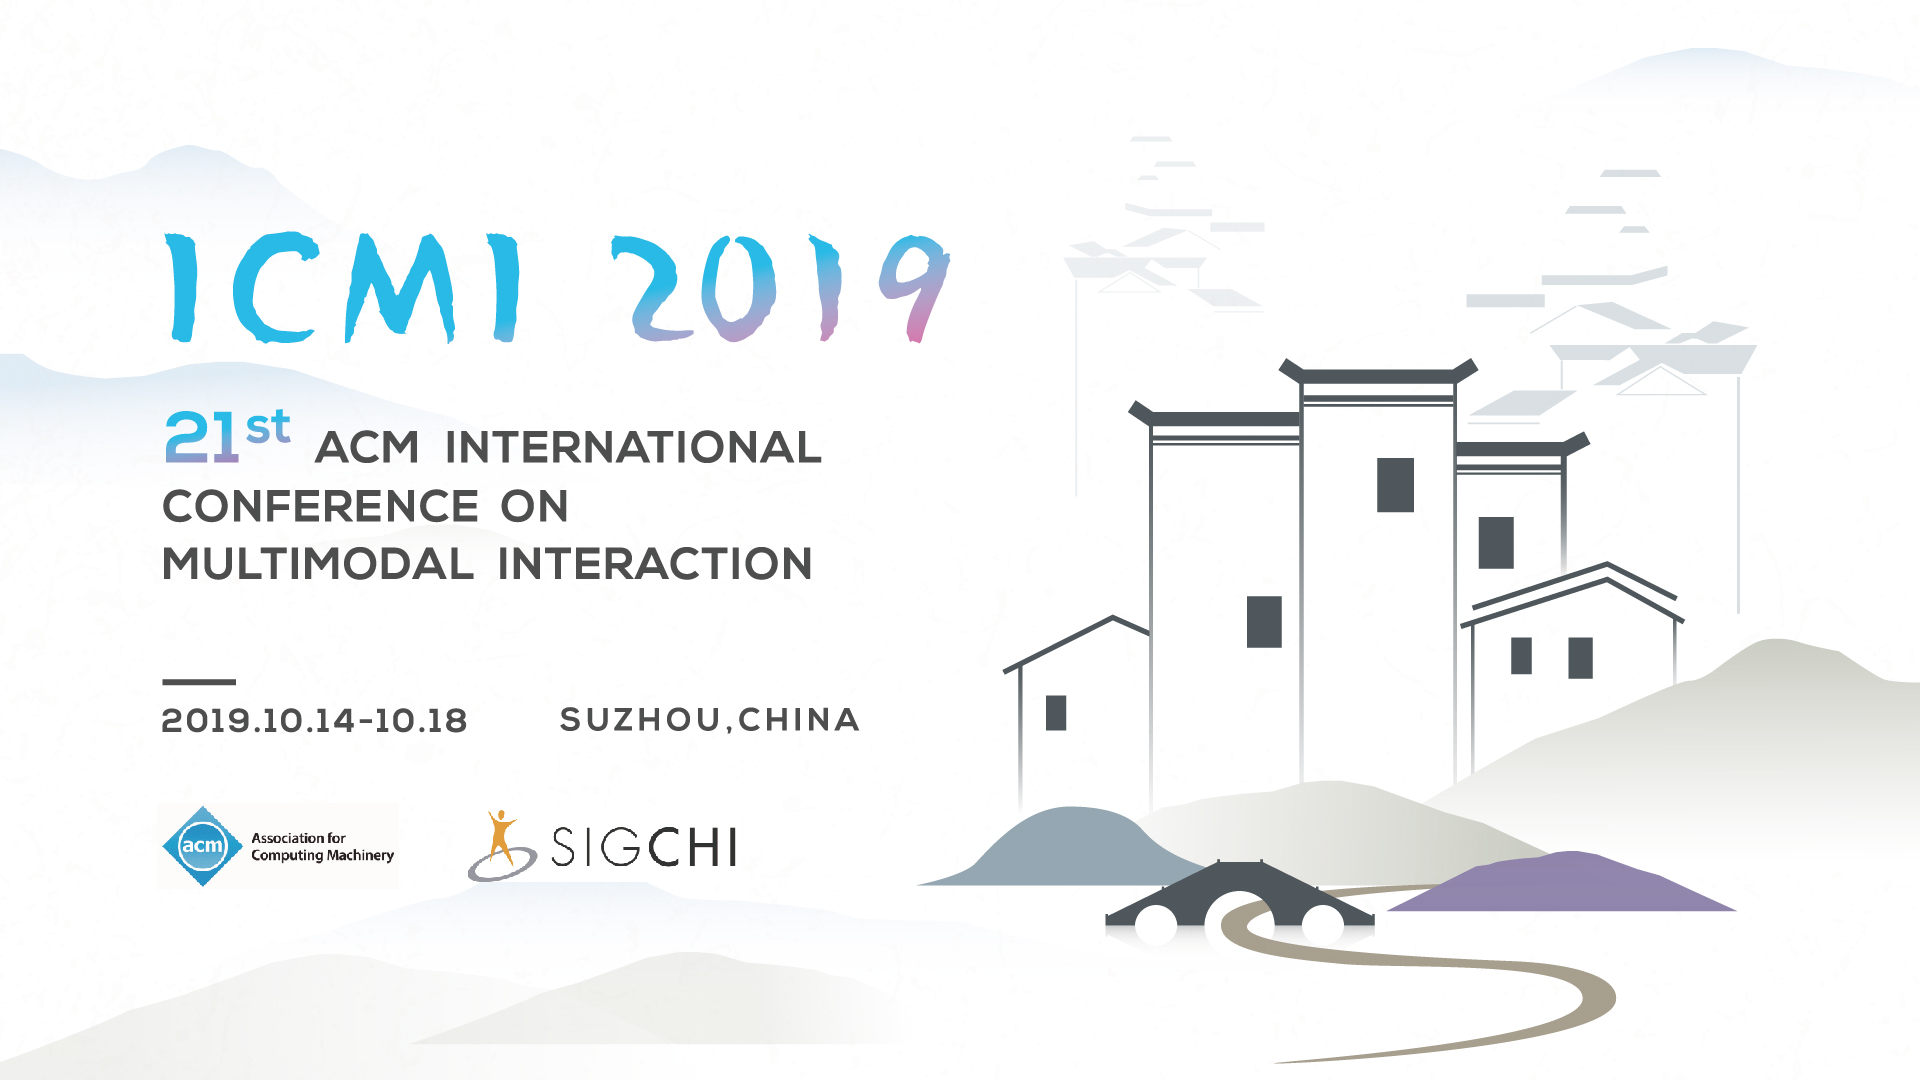 ICMI 2019 - International Conference on Multimodal Interaction